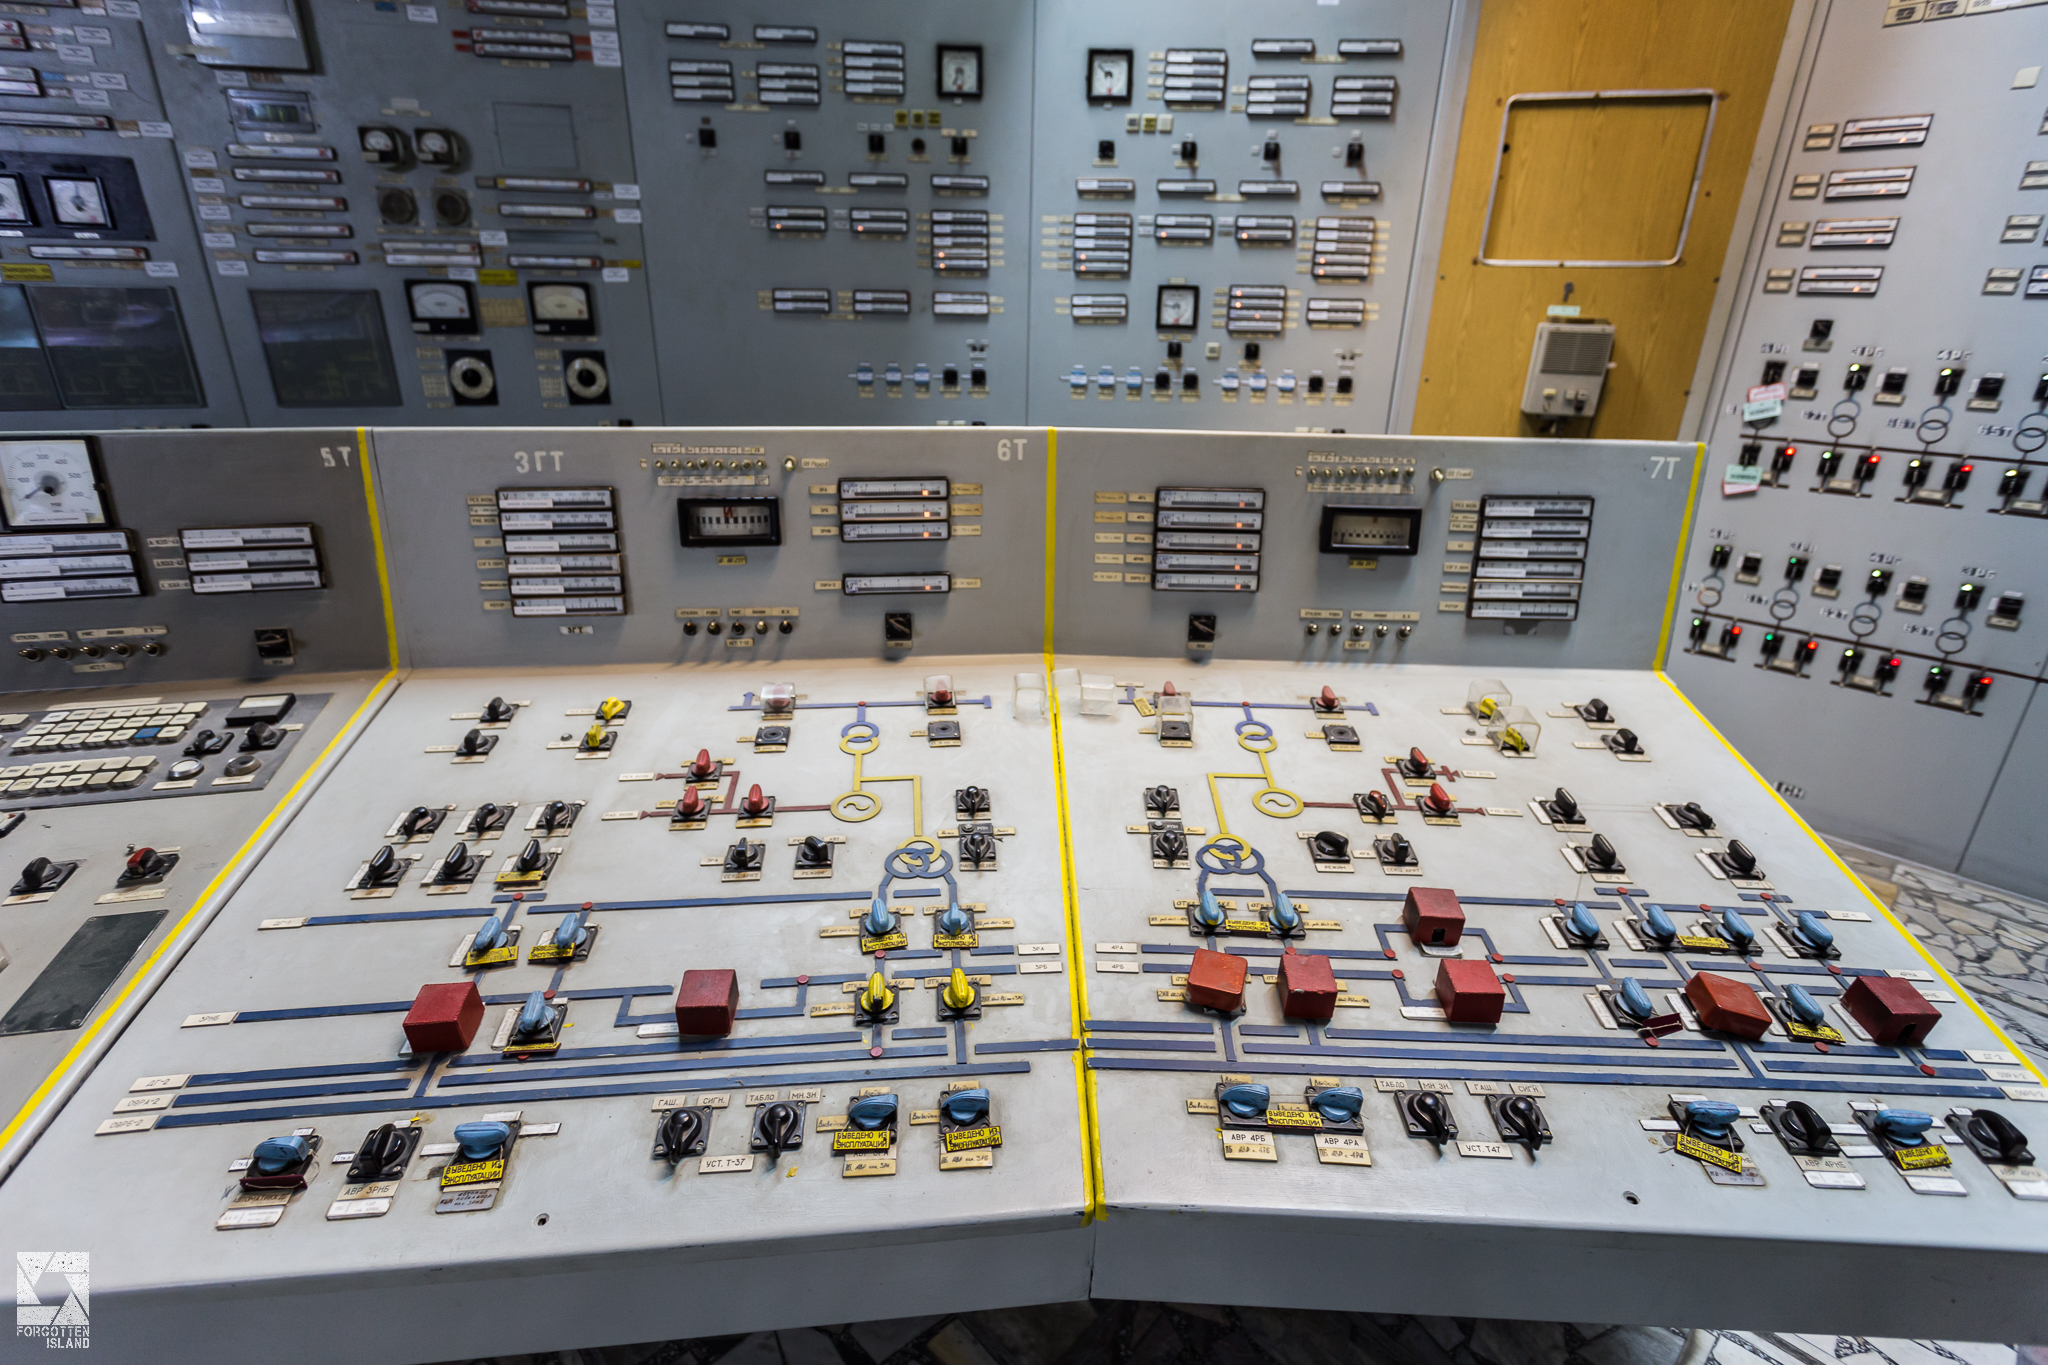 Chernobyl Nuclear Power Plant Control Room Forgotten Island